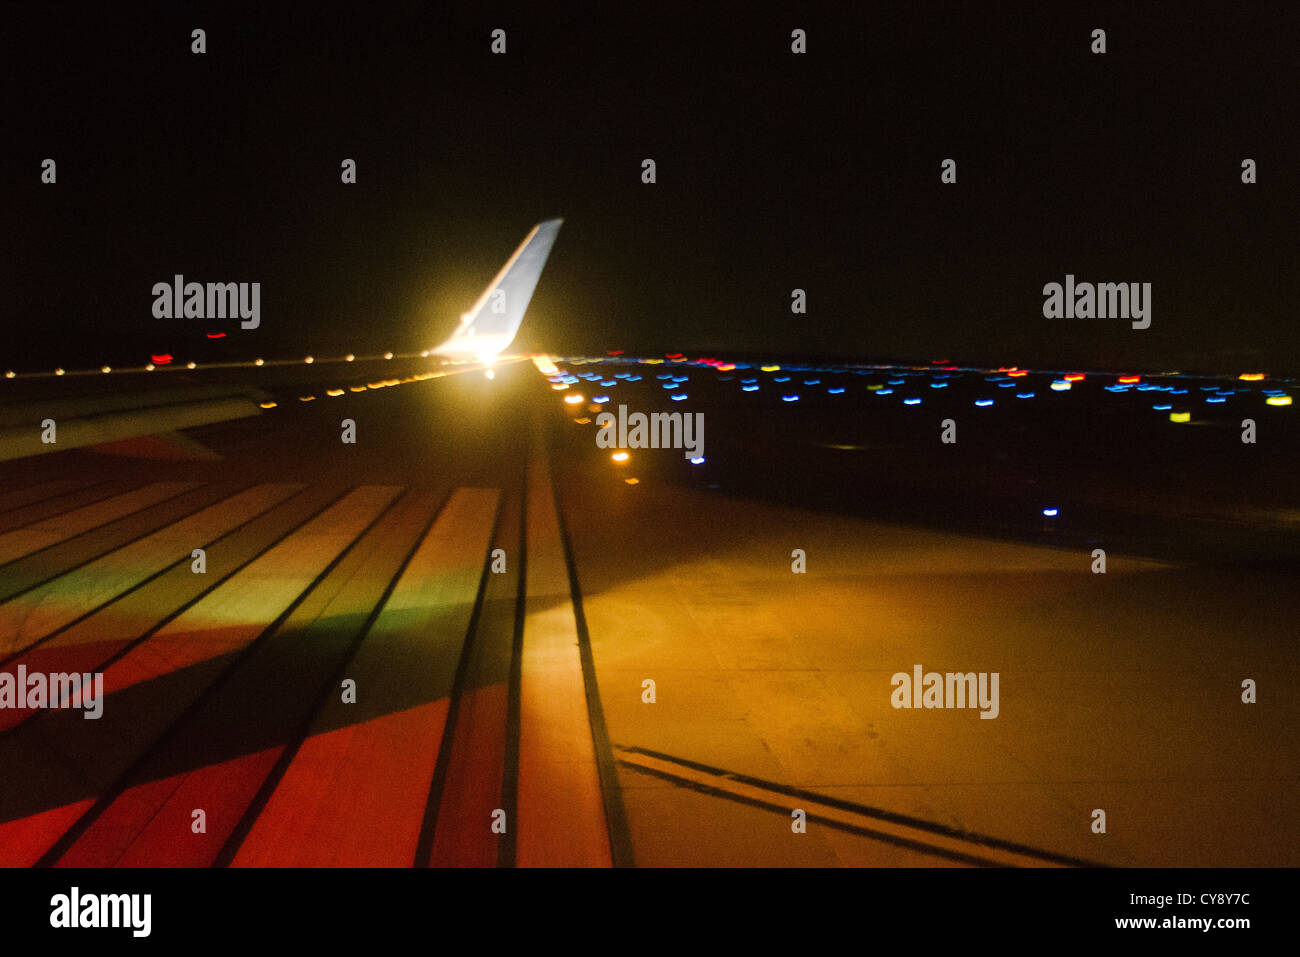 Tarmac night with lights - Stock Image